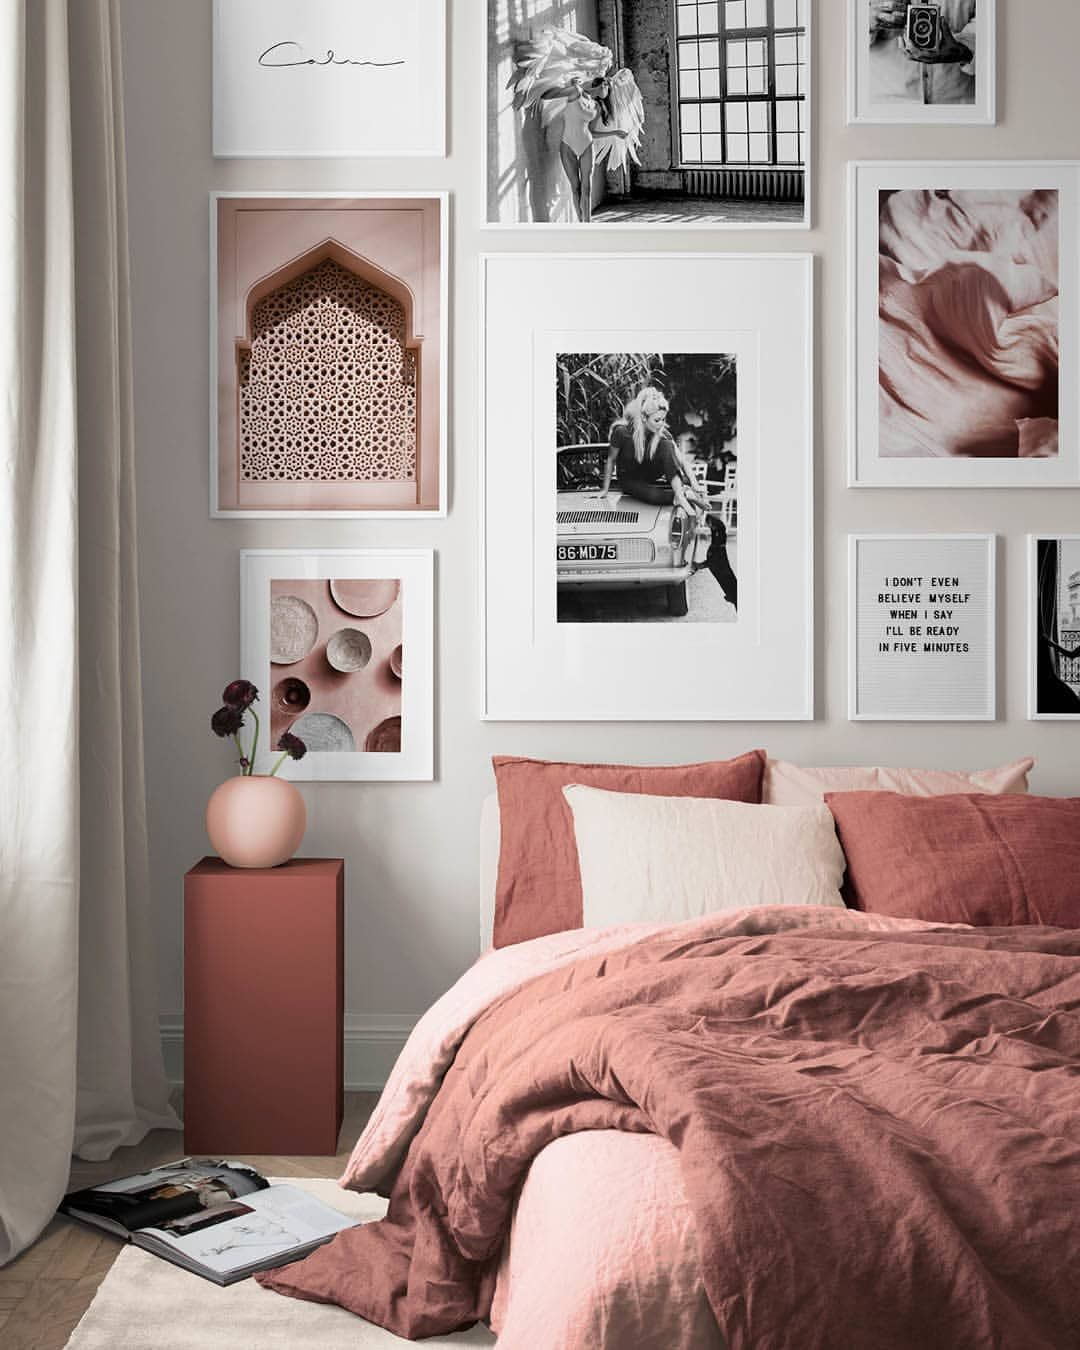 There S Still Time Up To 30 On Prints And Frames This Weekend Get 20 Off When You Buy 3 Items 25 Off Gallery Wall Bedroom Home Decor Cheap Home Decor